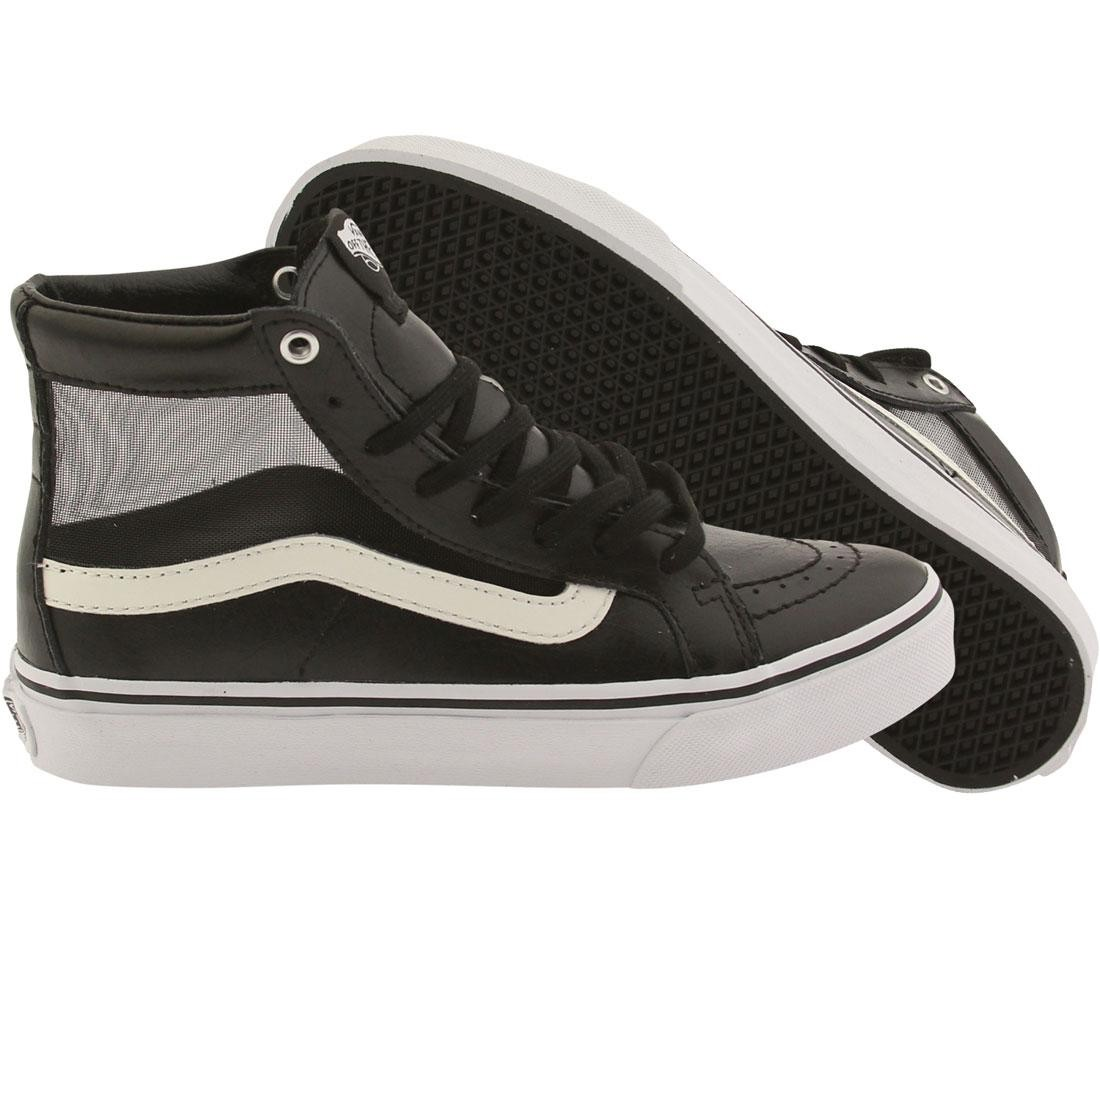 0e259058e068 Vans Women SK8-Hi Slim Cutout - Mesh black white